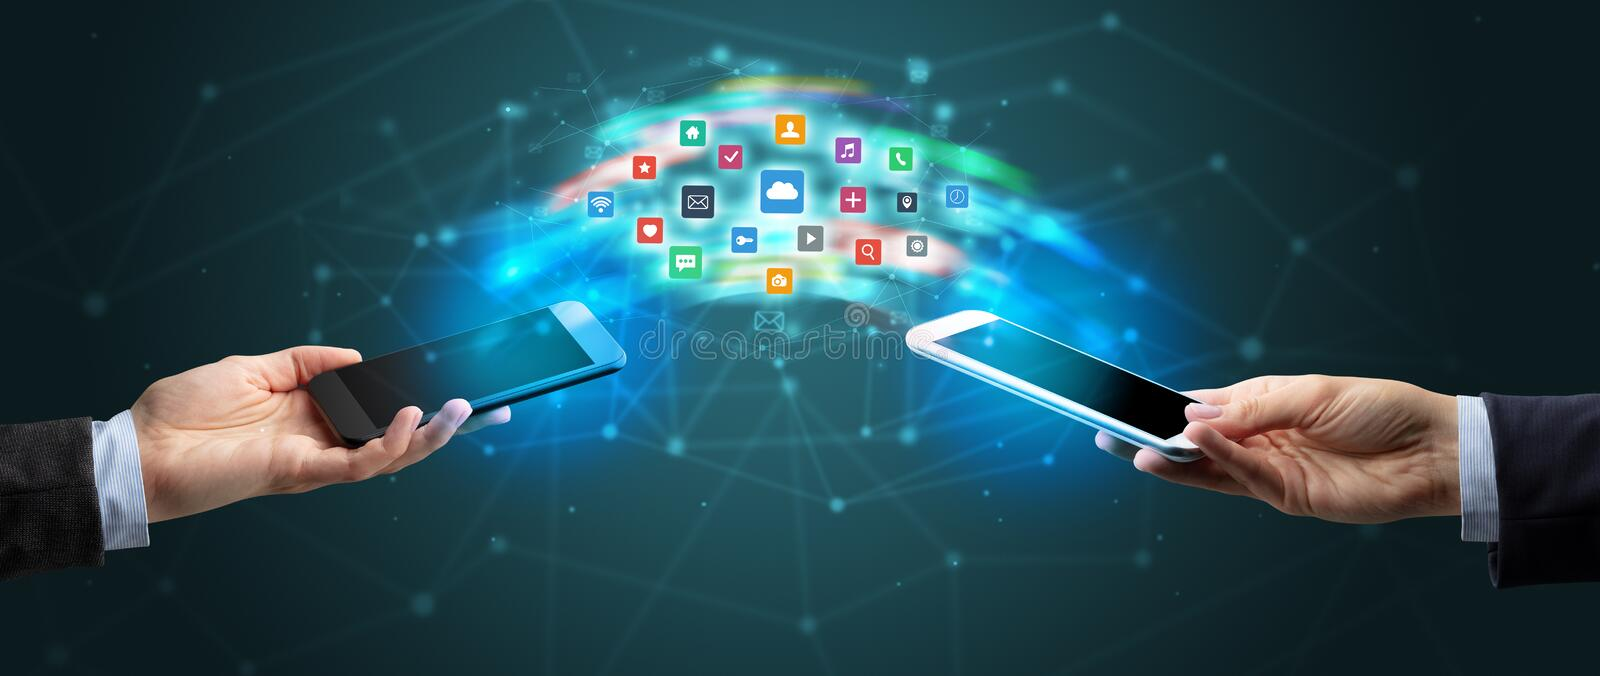 Mobile phones syncing application vector illustration